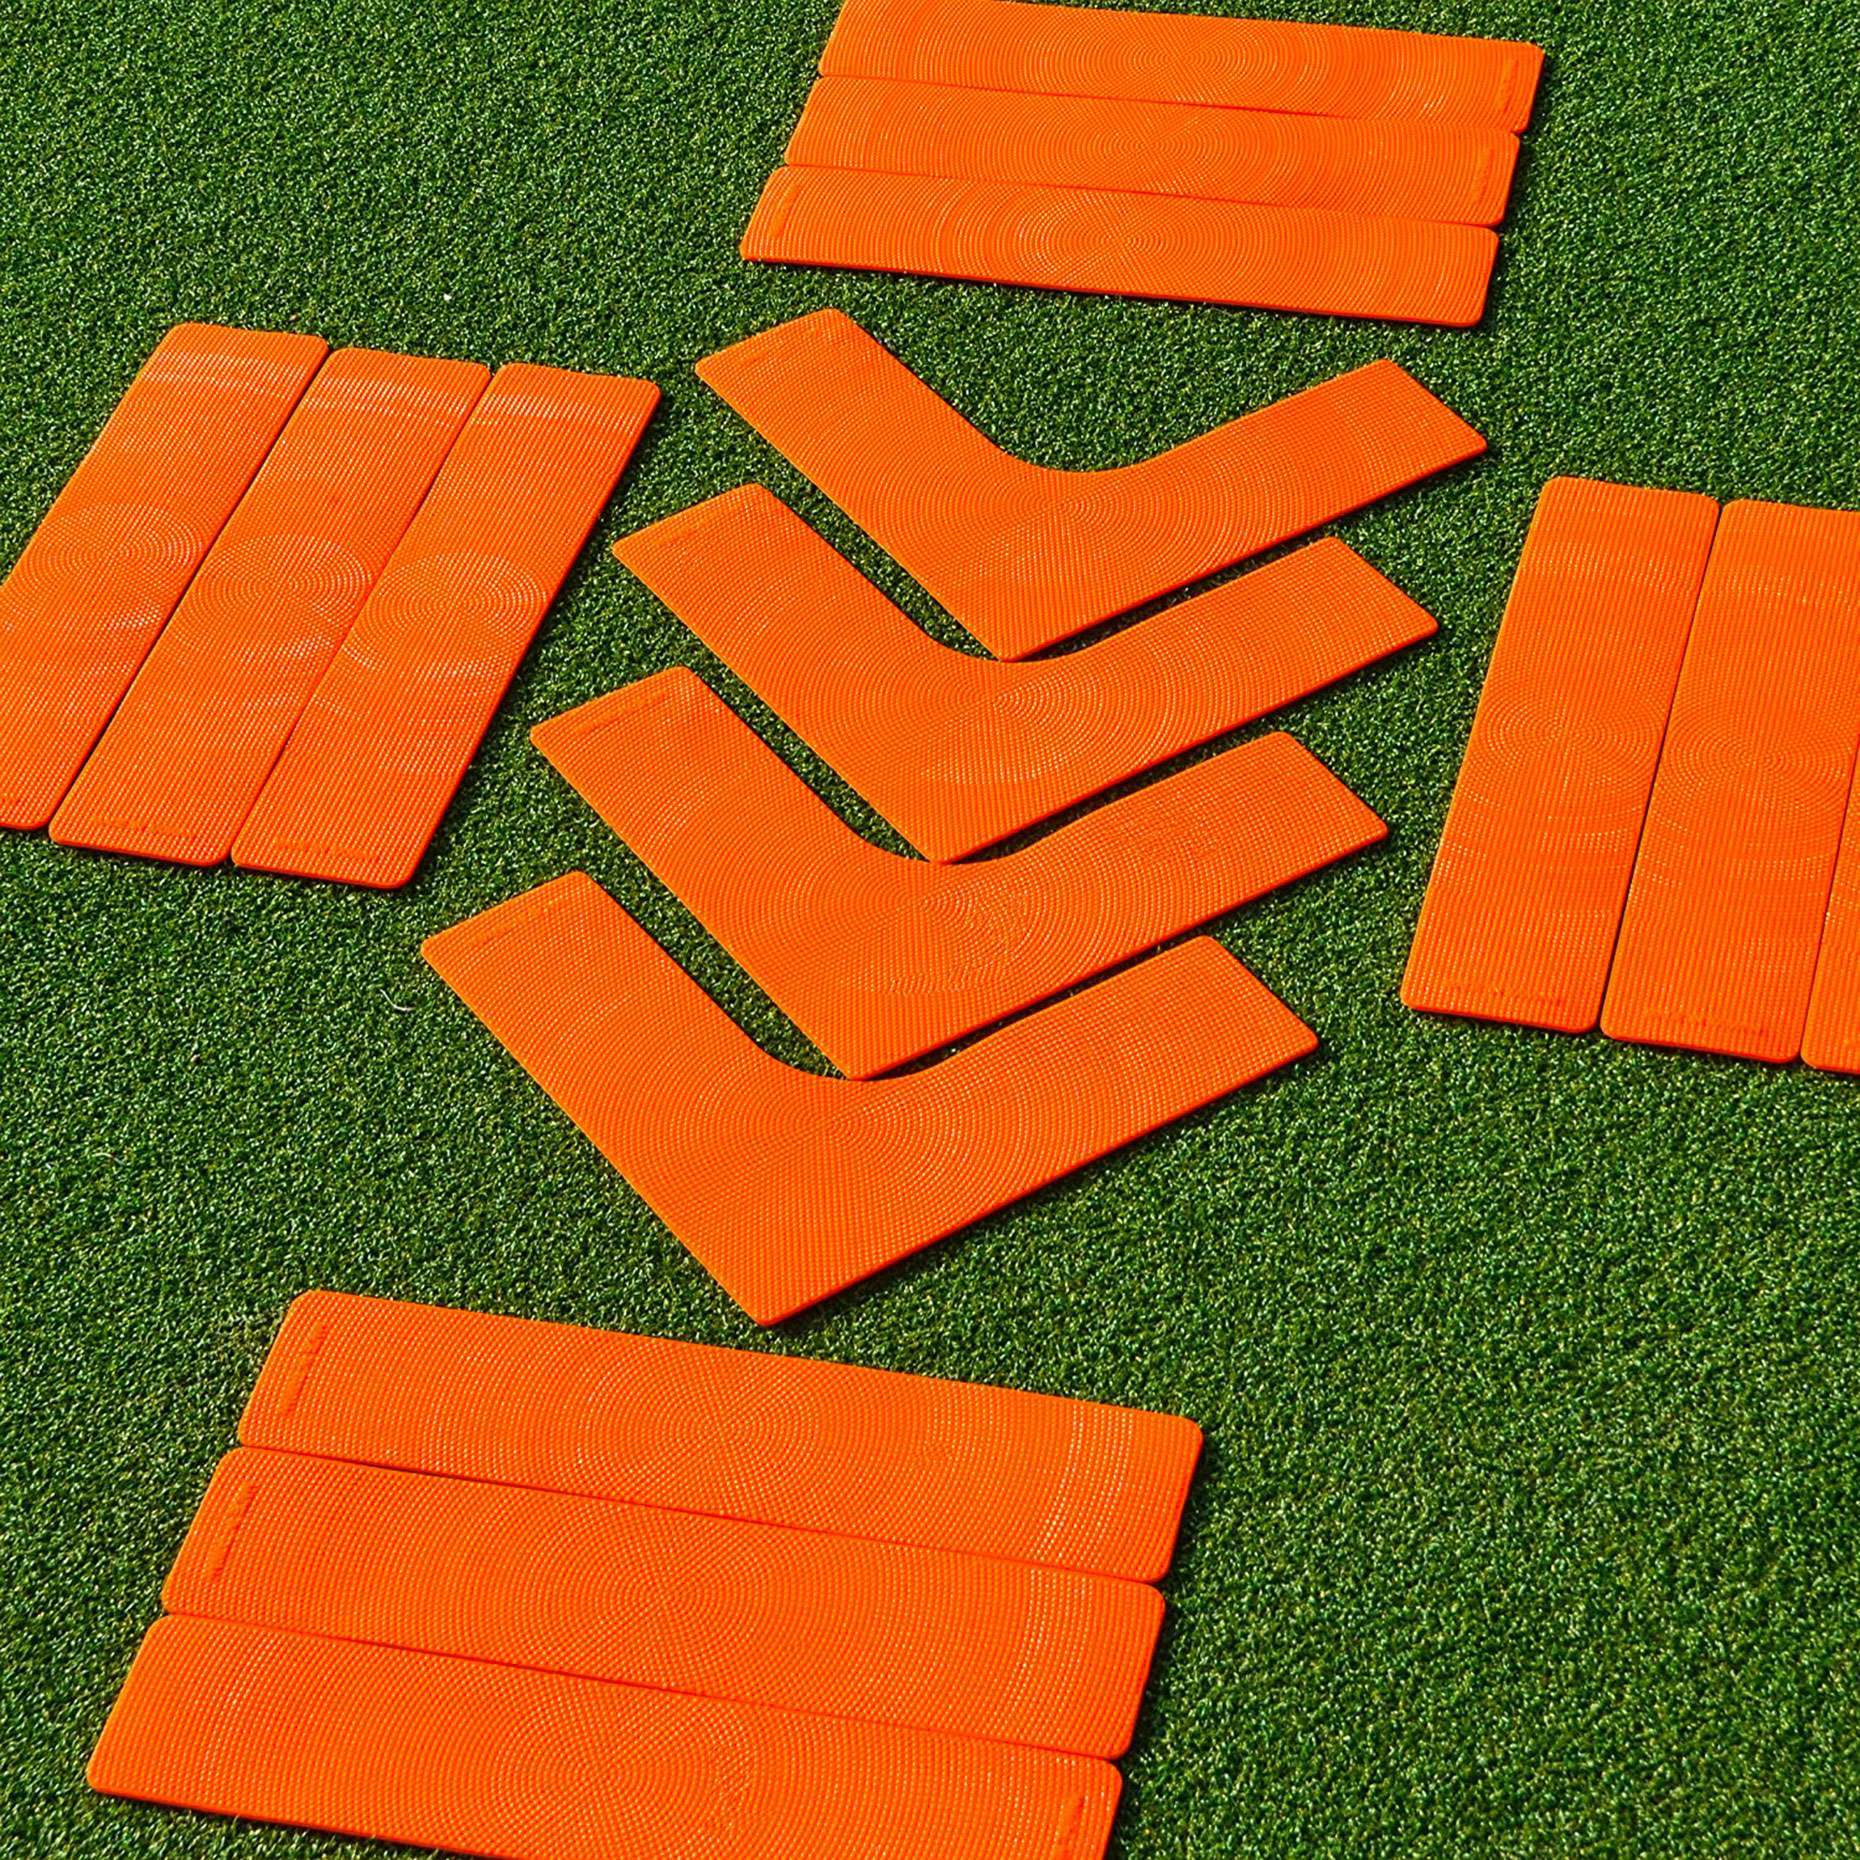 Ultra-Durable Tennis Court Markers